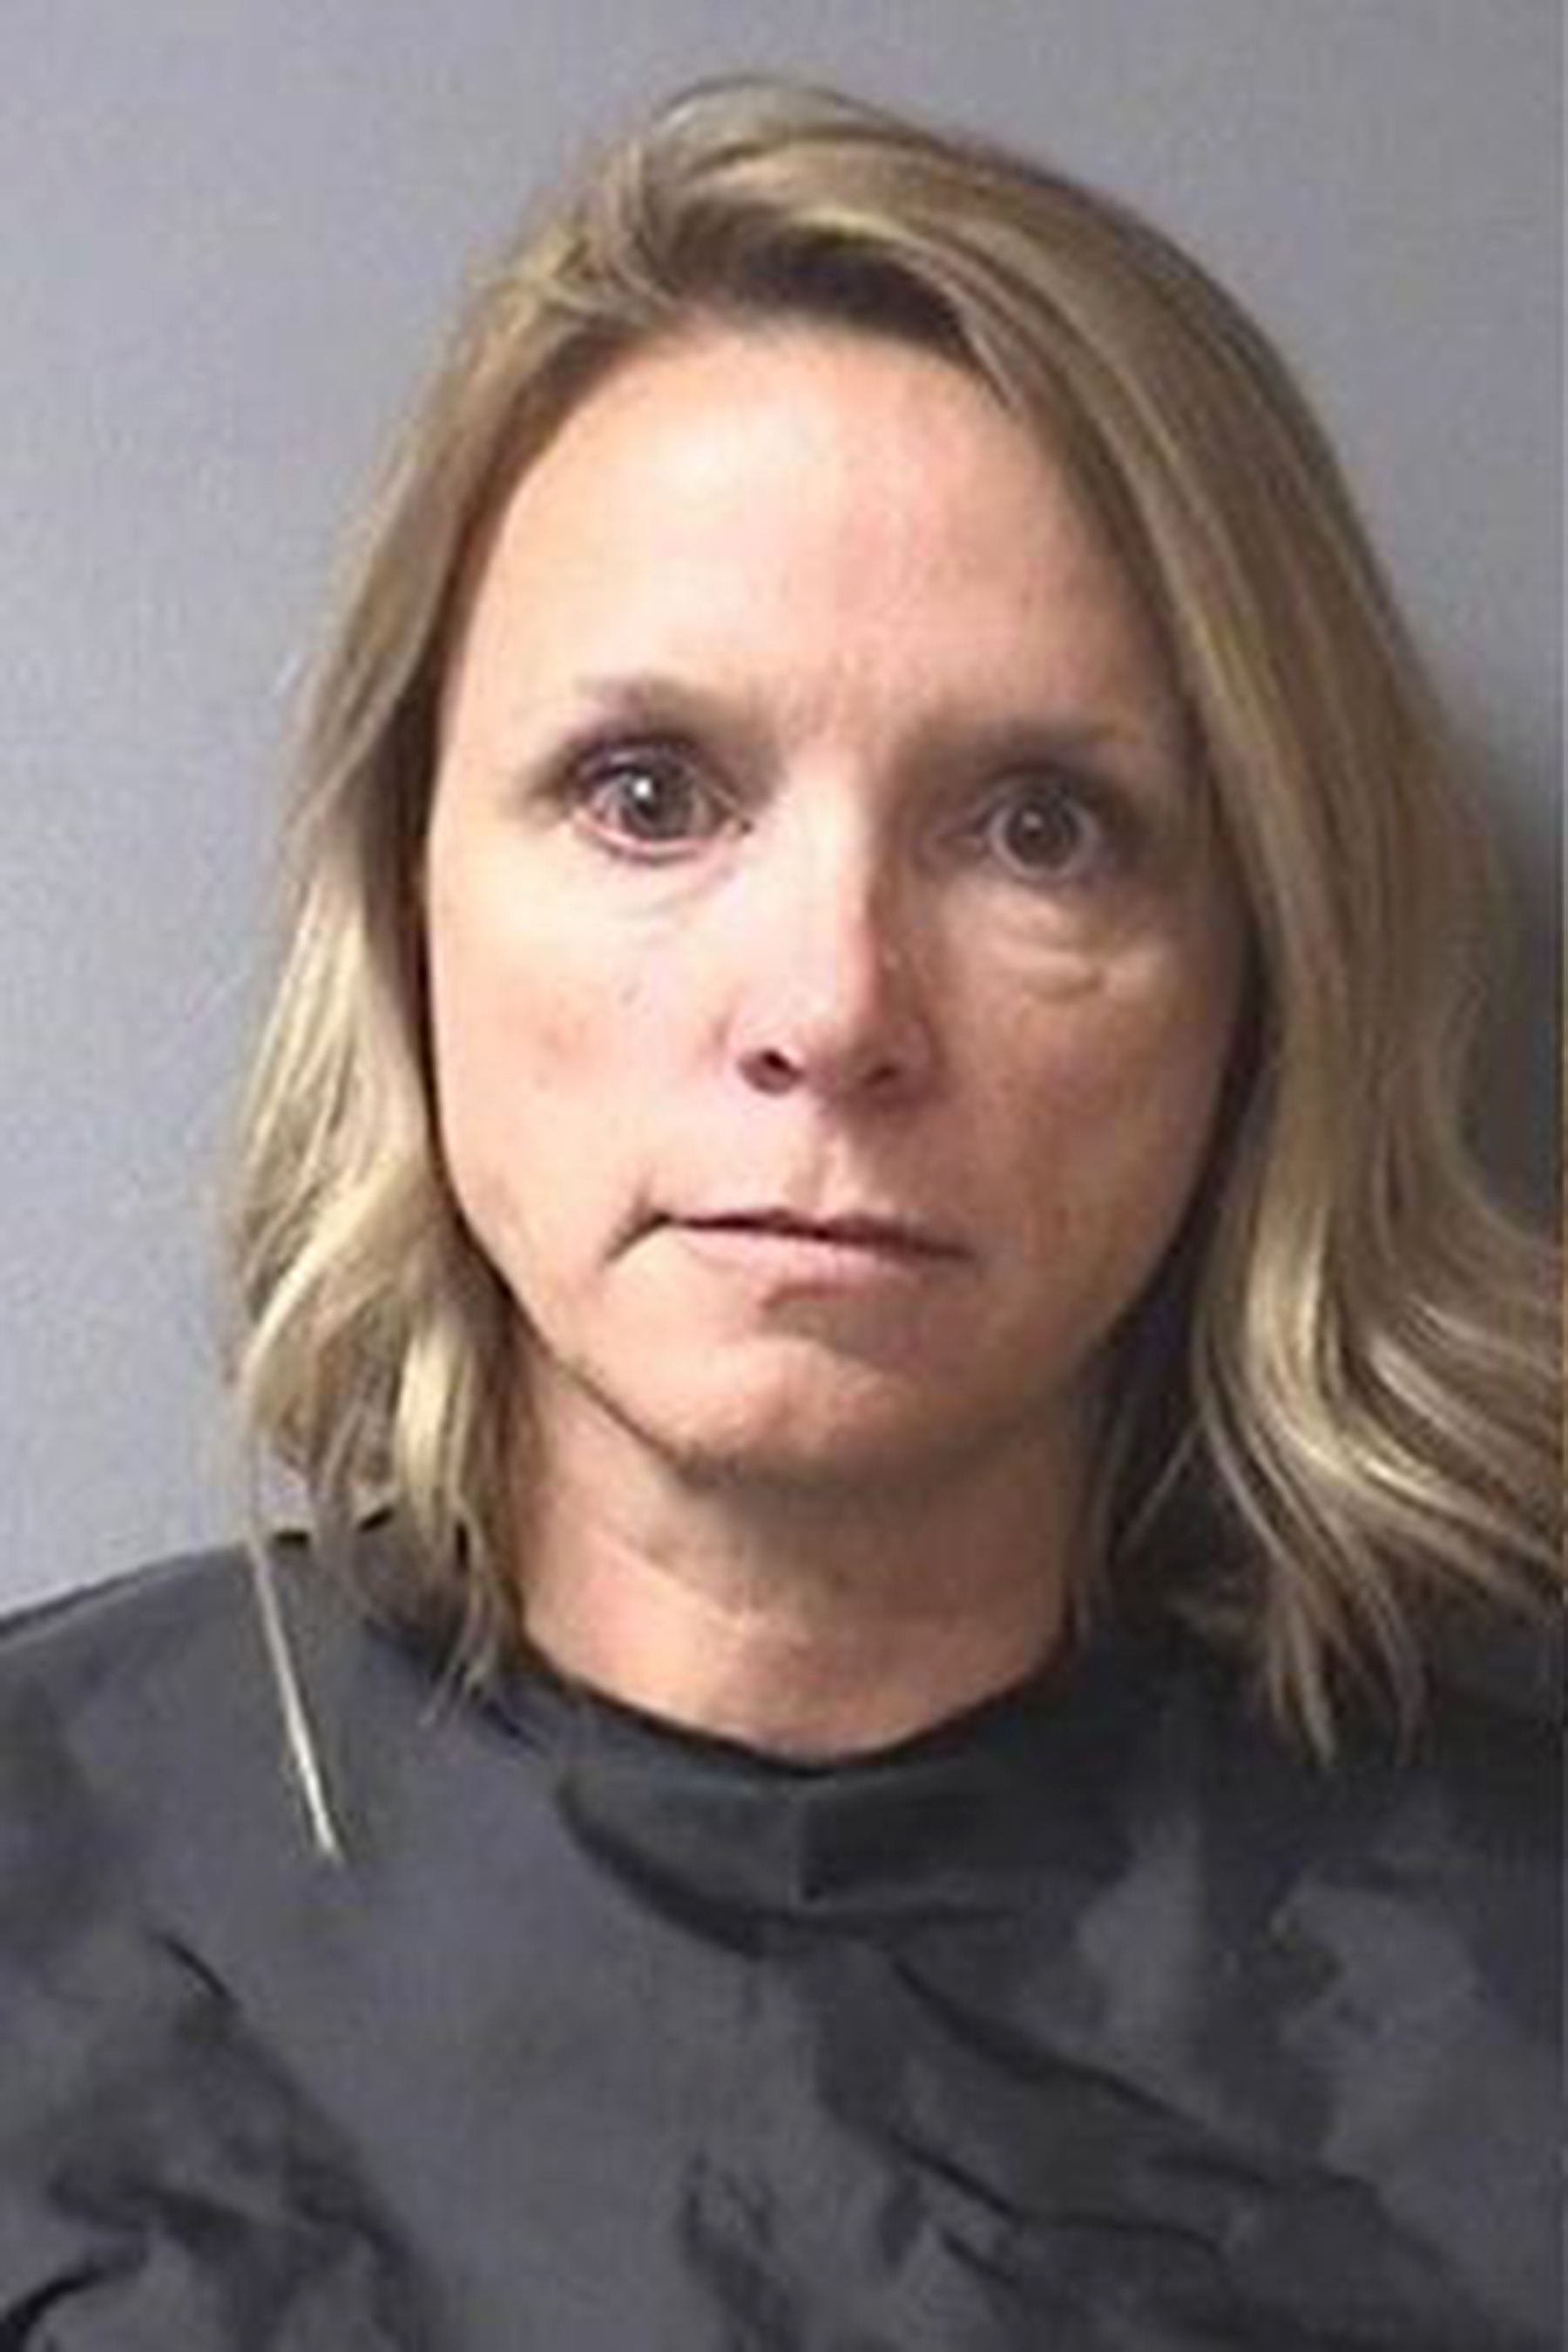 School Superintendent Arrested After Allegedly Using Her Insurance to Get Help for a Sick Student